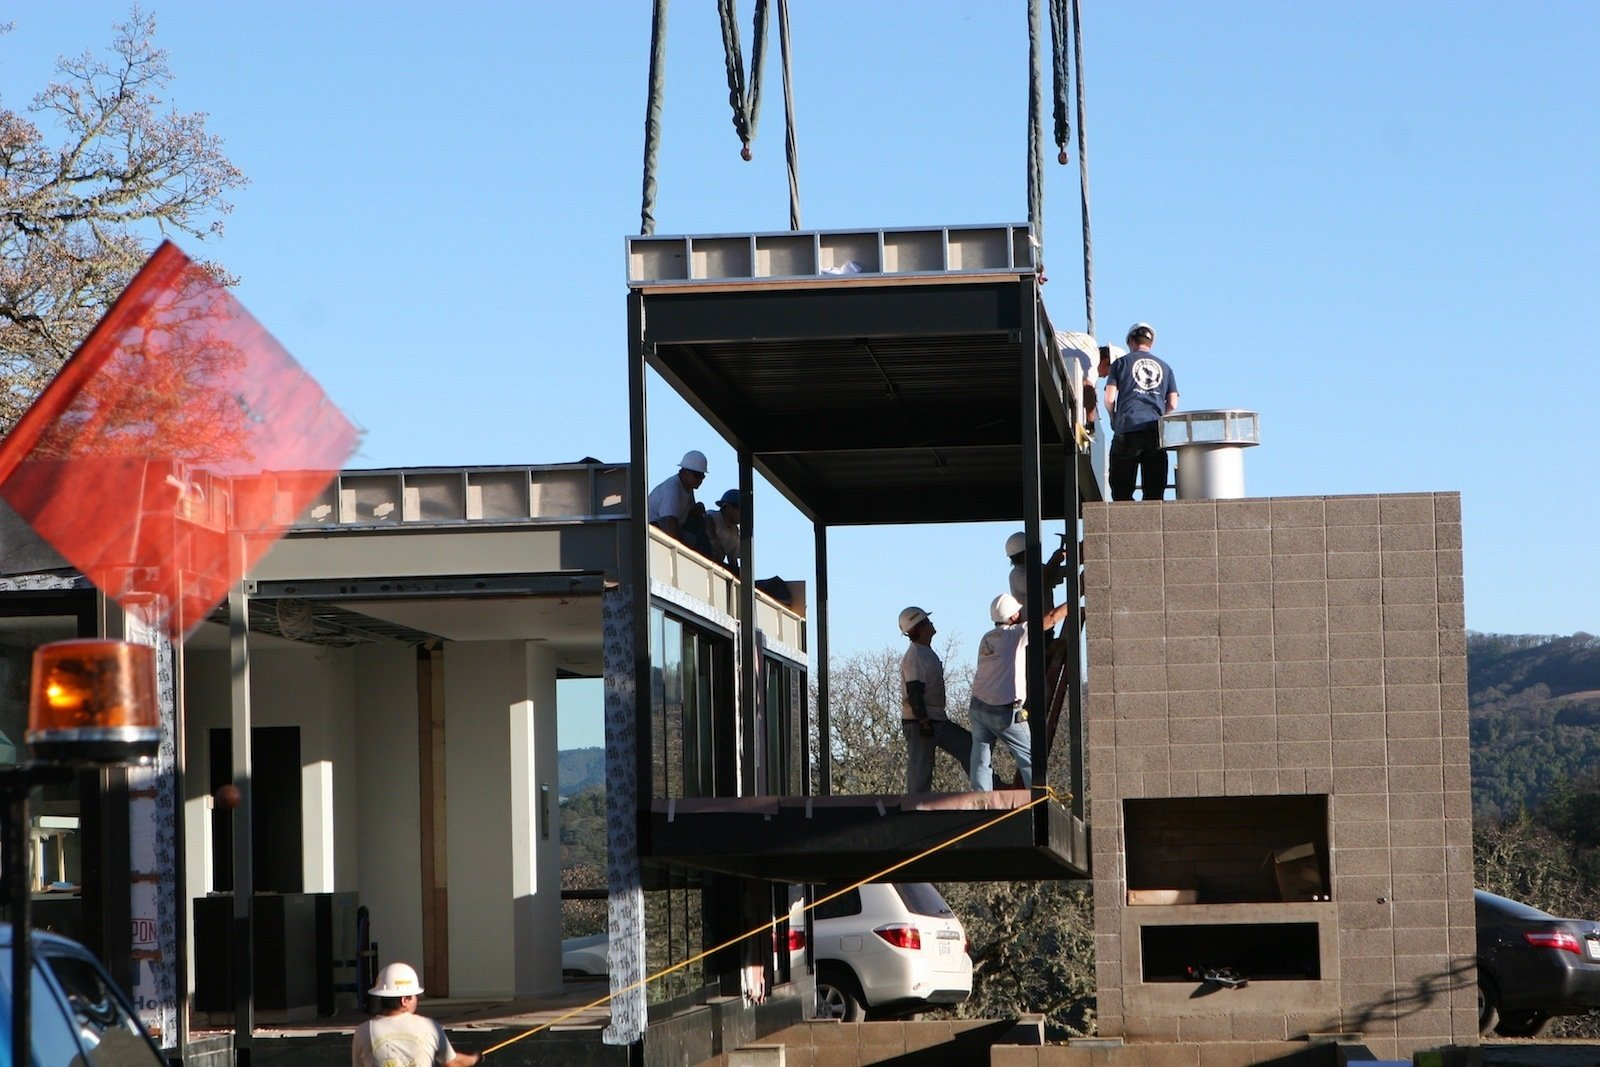 Here's one of the outdoor covered deck modules being lowered into place adjacent to the fireplace.  Building a Prefab House by Jaime Gillin